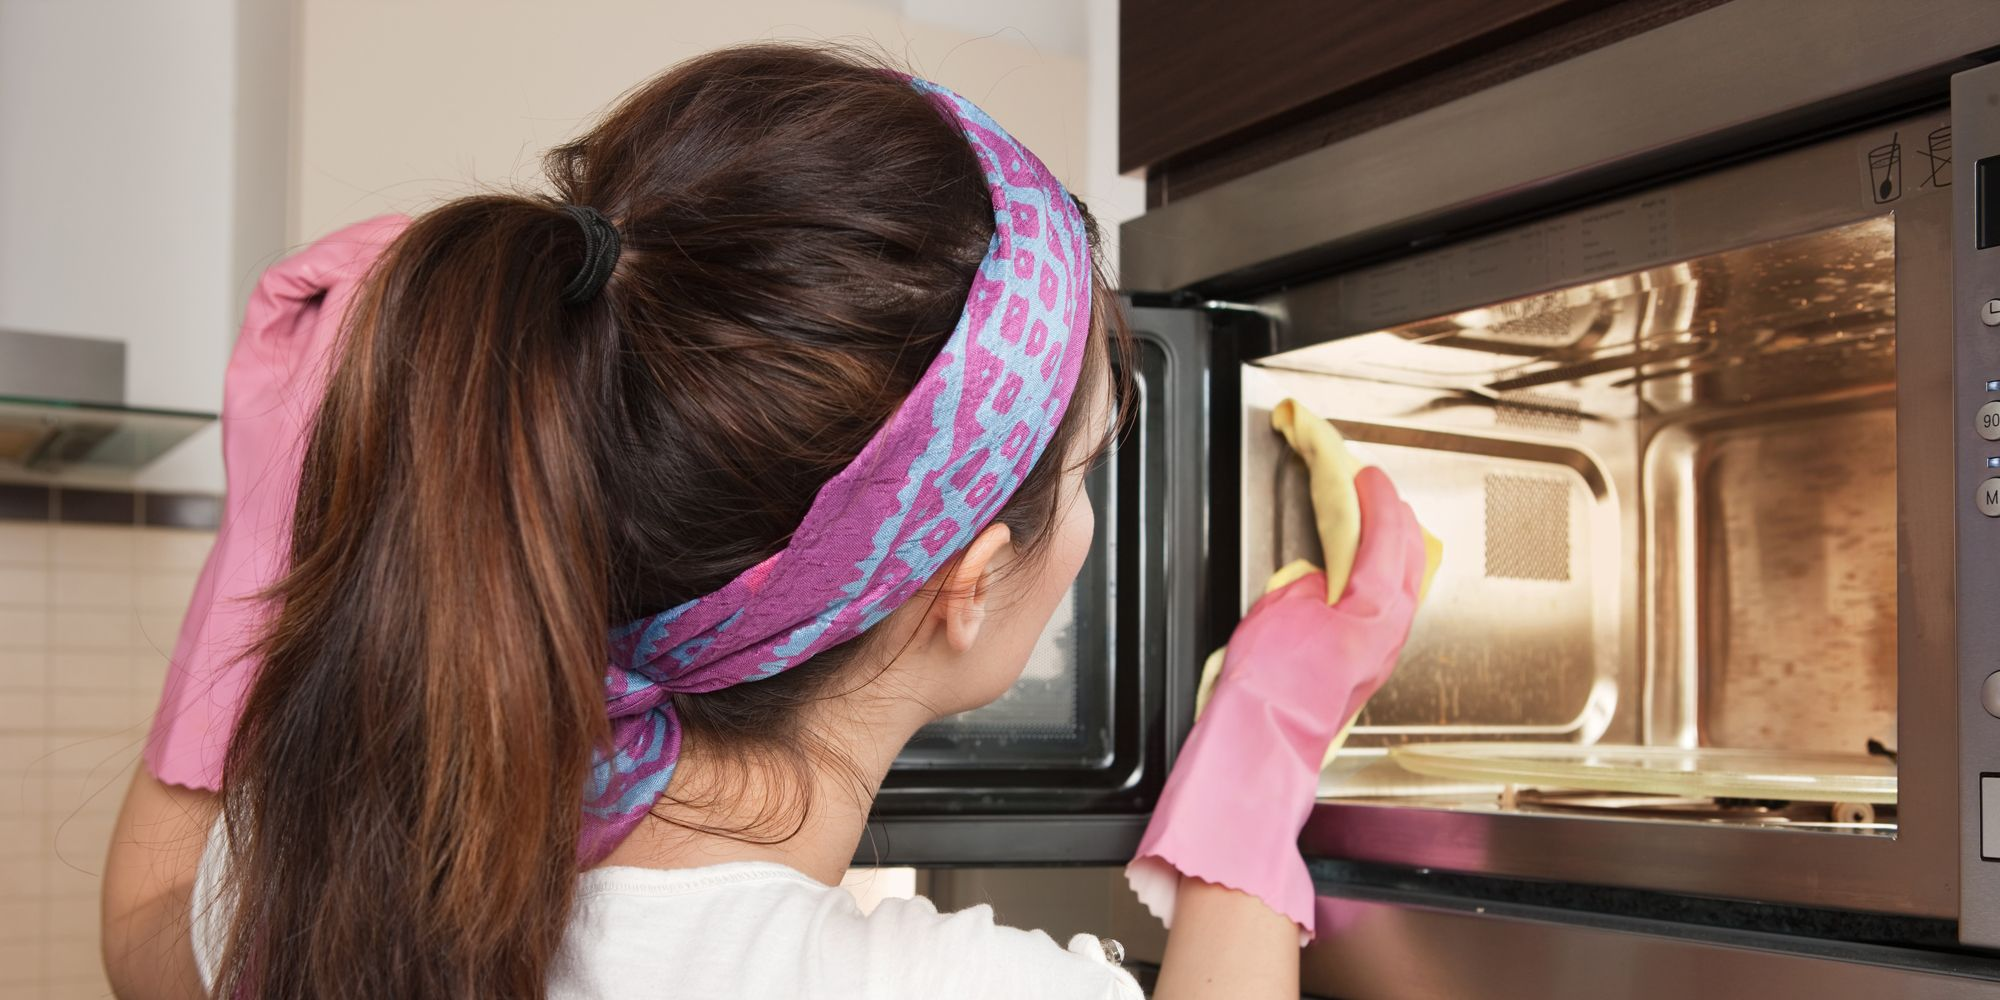 how to clean a microwave with lemon and